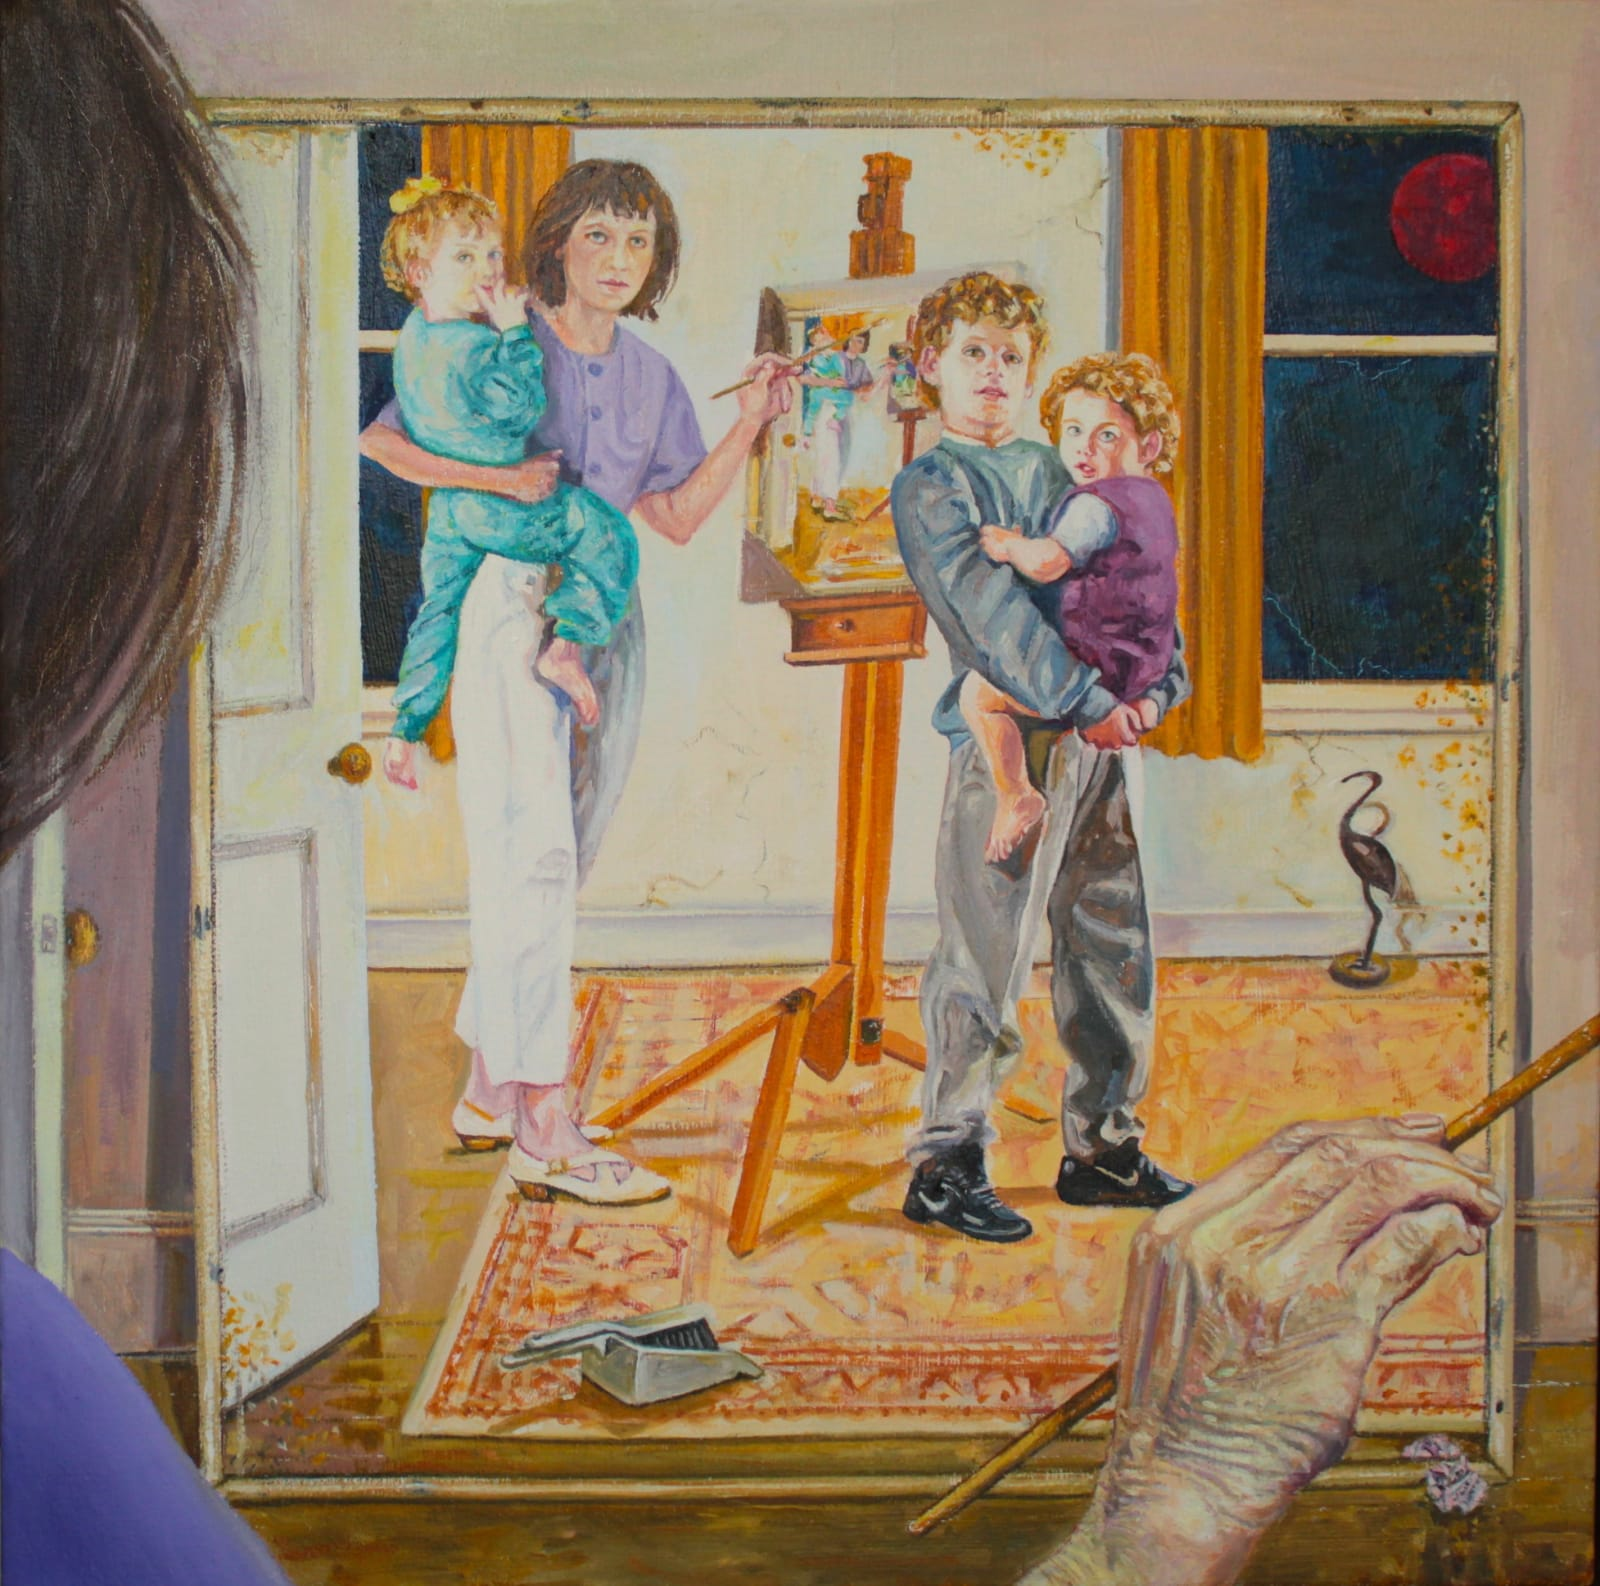 Wendy Elia Time just slips…(self-portrait with kids), 2019 Oil on canvas 44 x 44cm £2,200